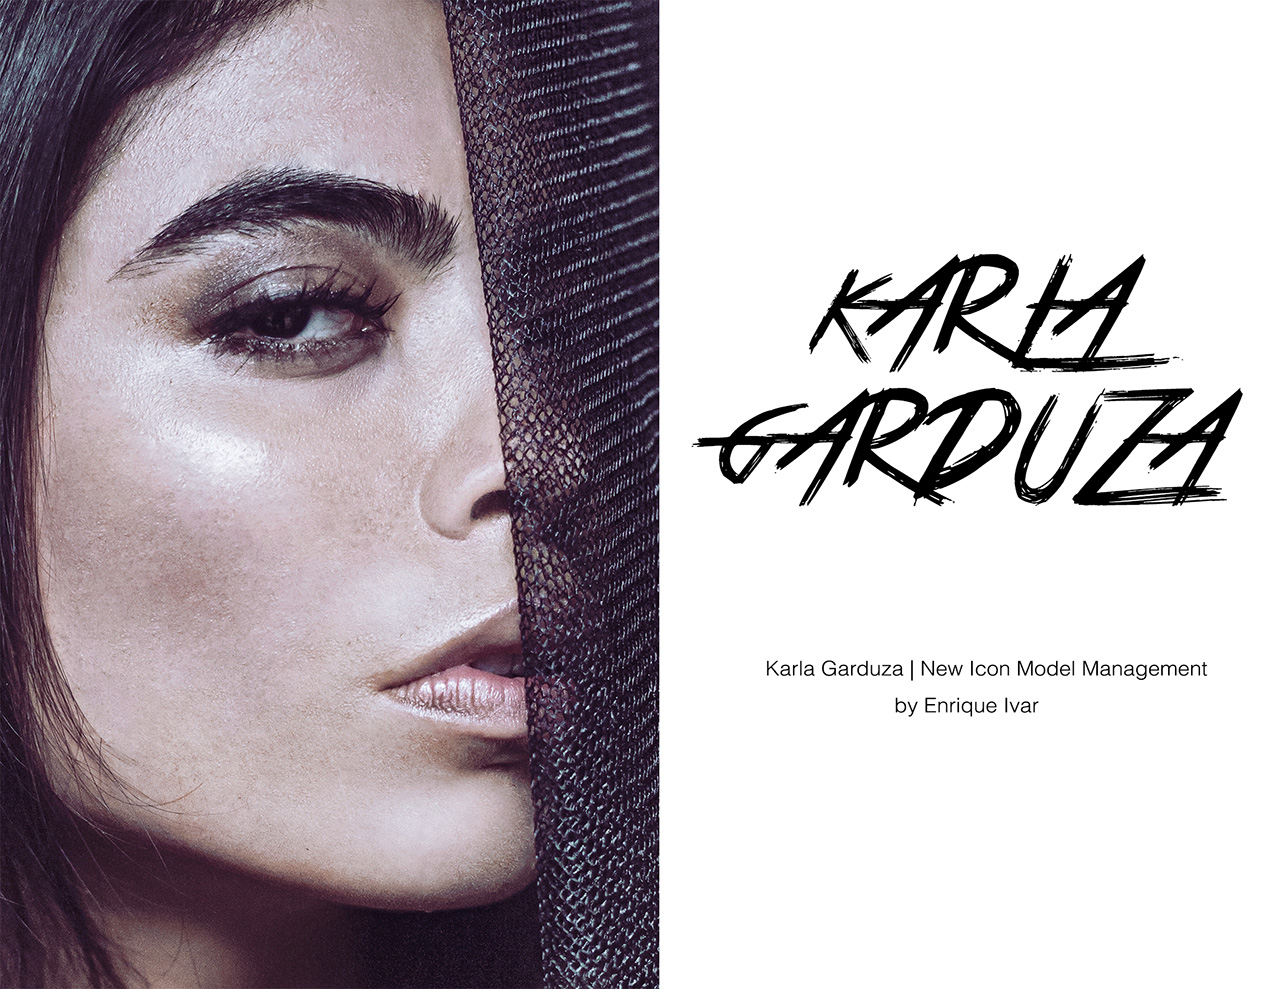 Karla Garduza photographed by Enrique Ivar